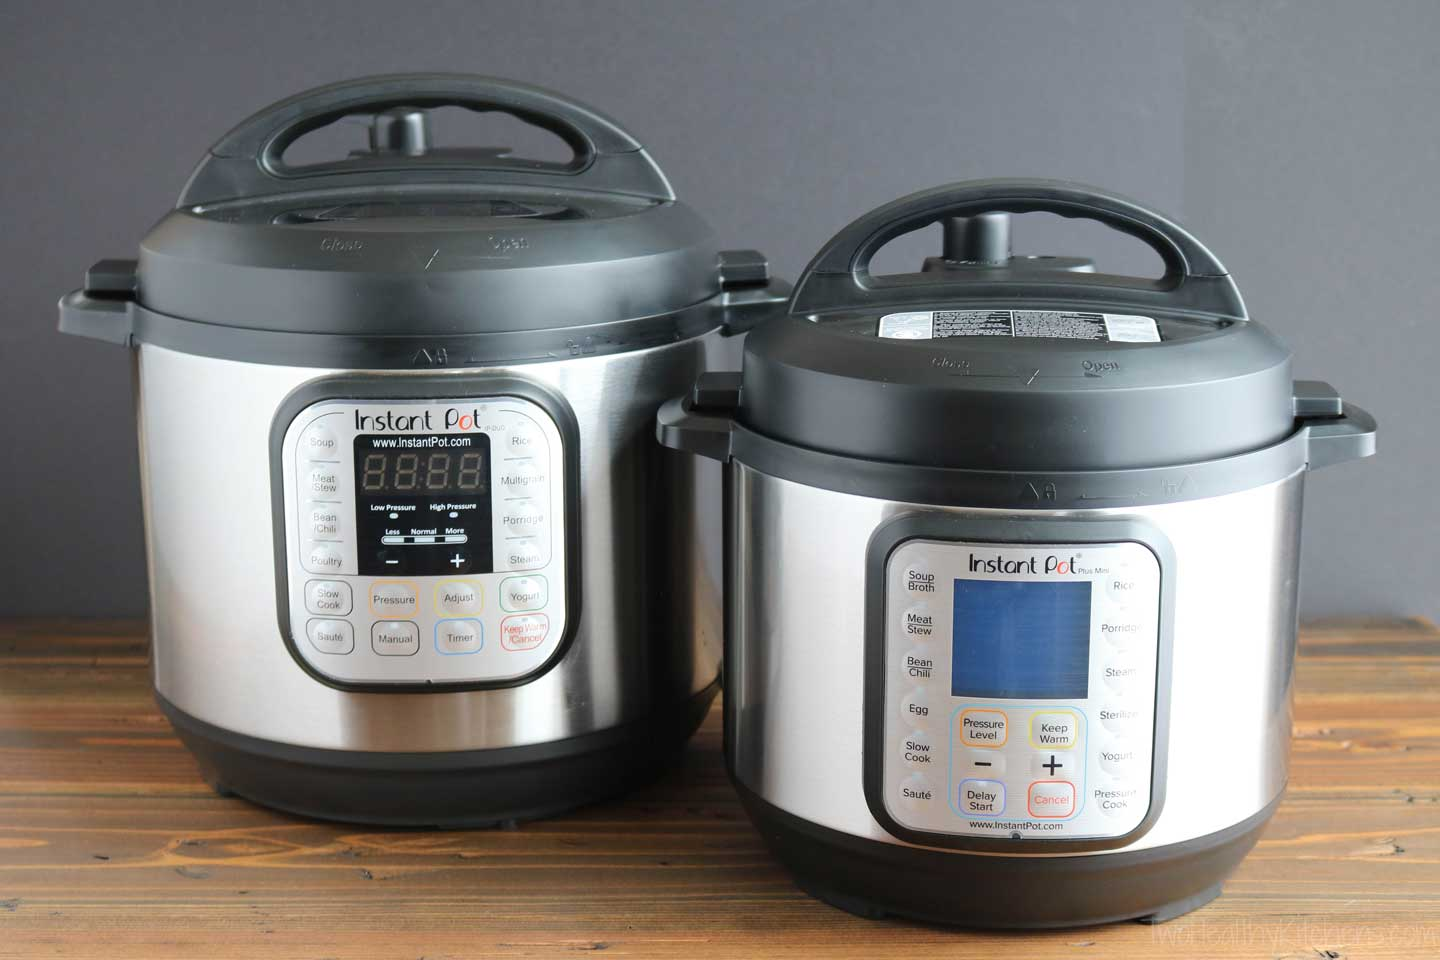 There are quite a few different sizes and models out there, but most Instant Pots have roughly the same basic functions. So if you're wondering what you can cook with an Instant Pot, the answer will be more or less the same, regardless of which size or model you choose.